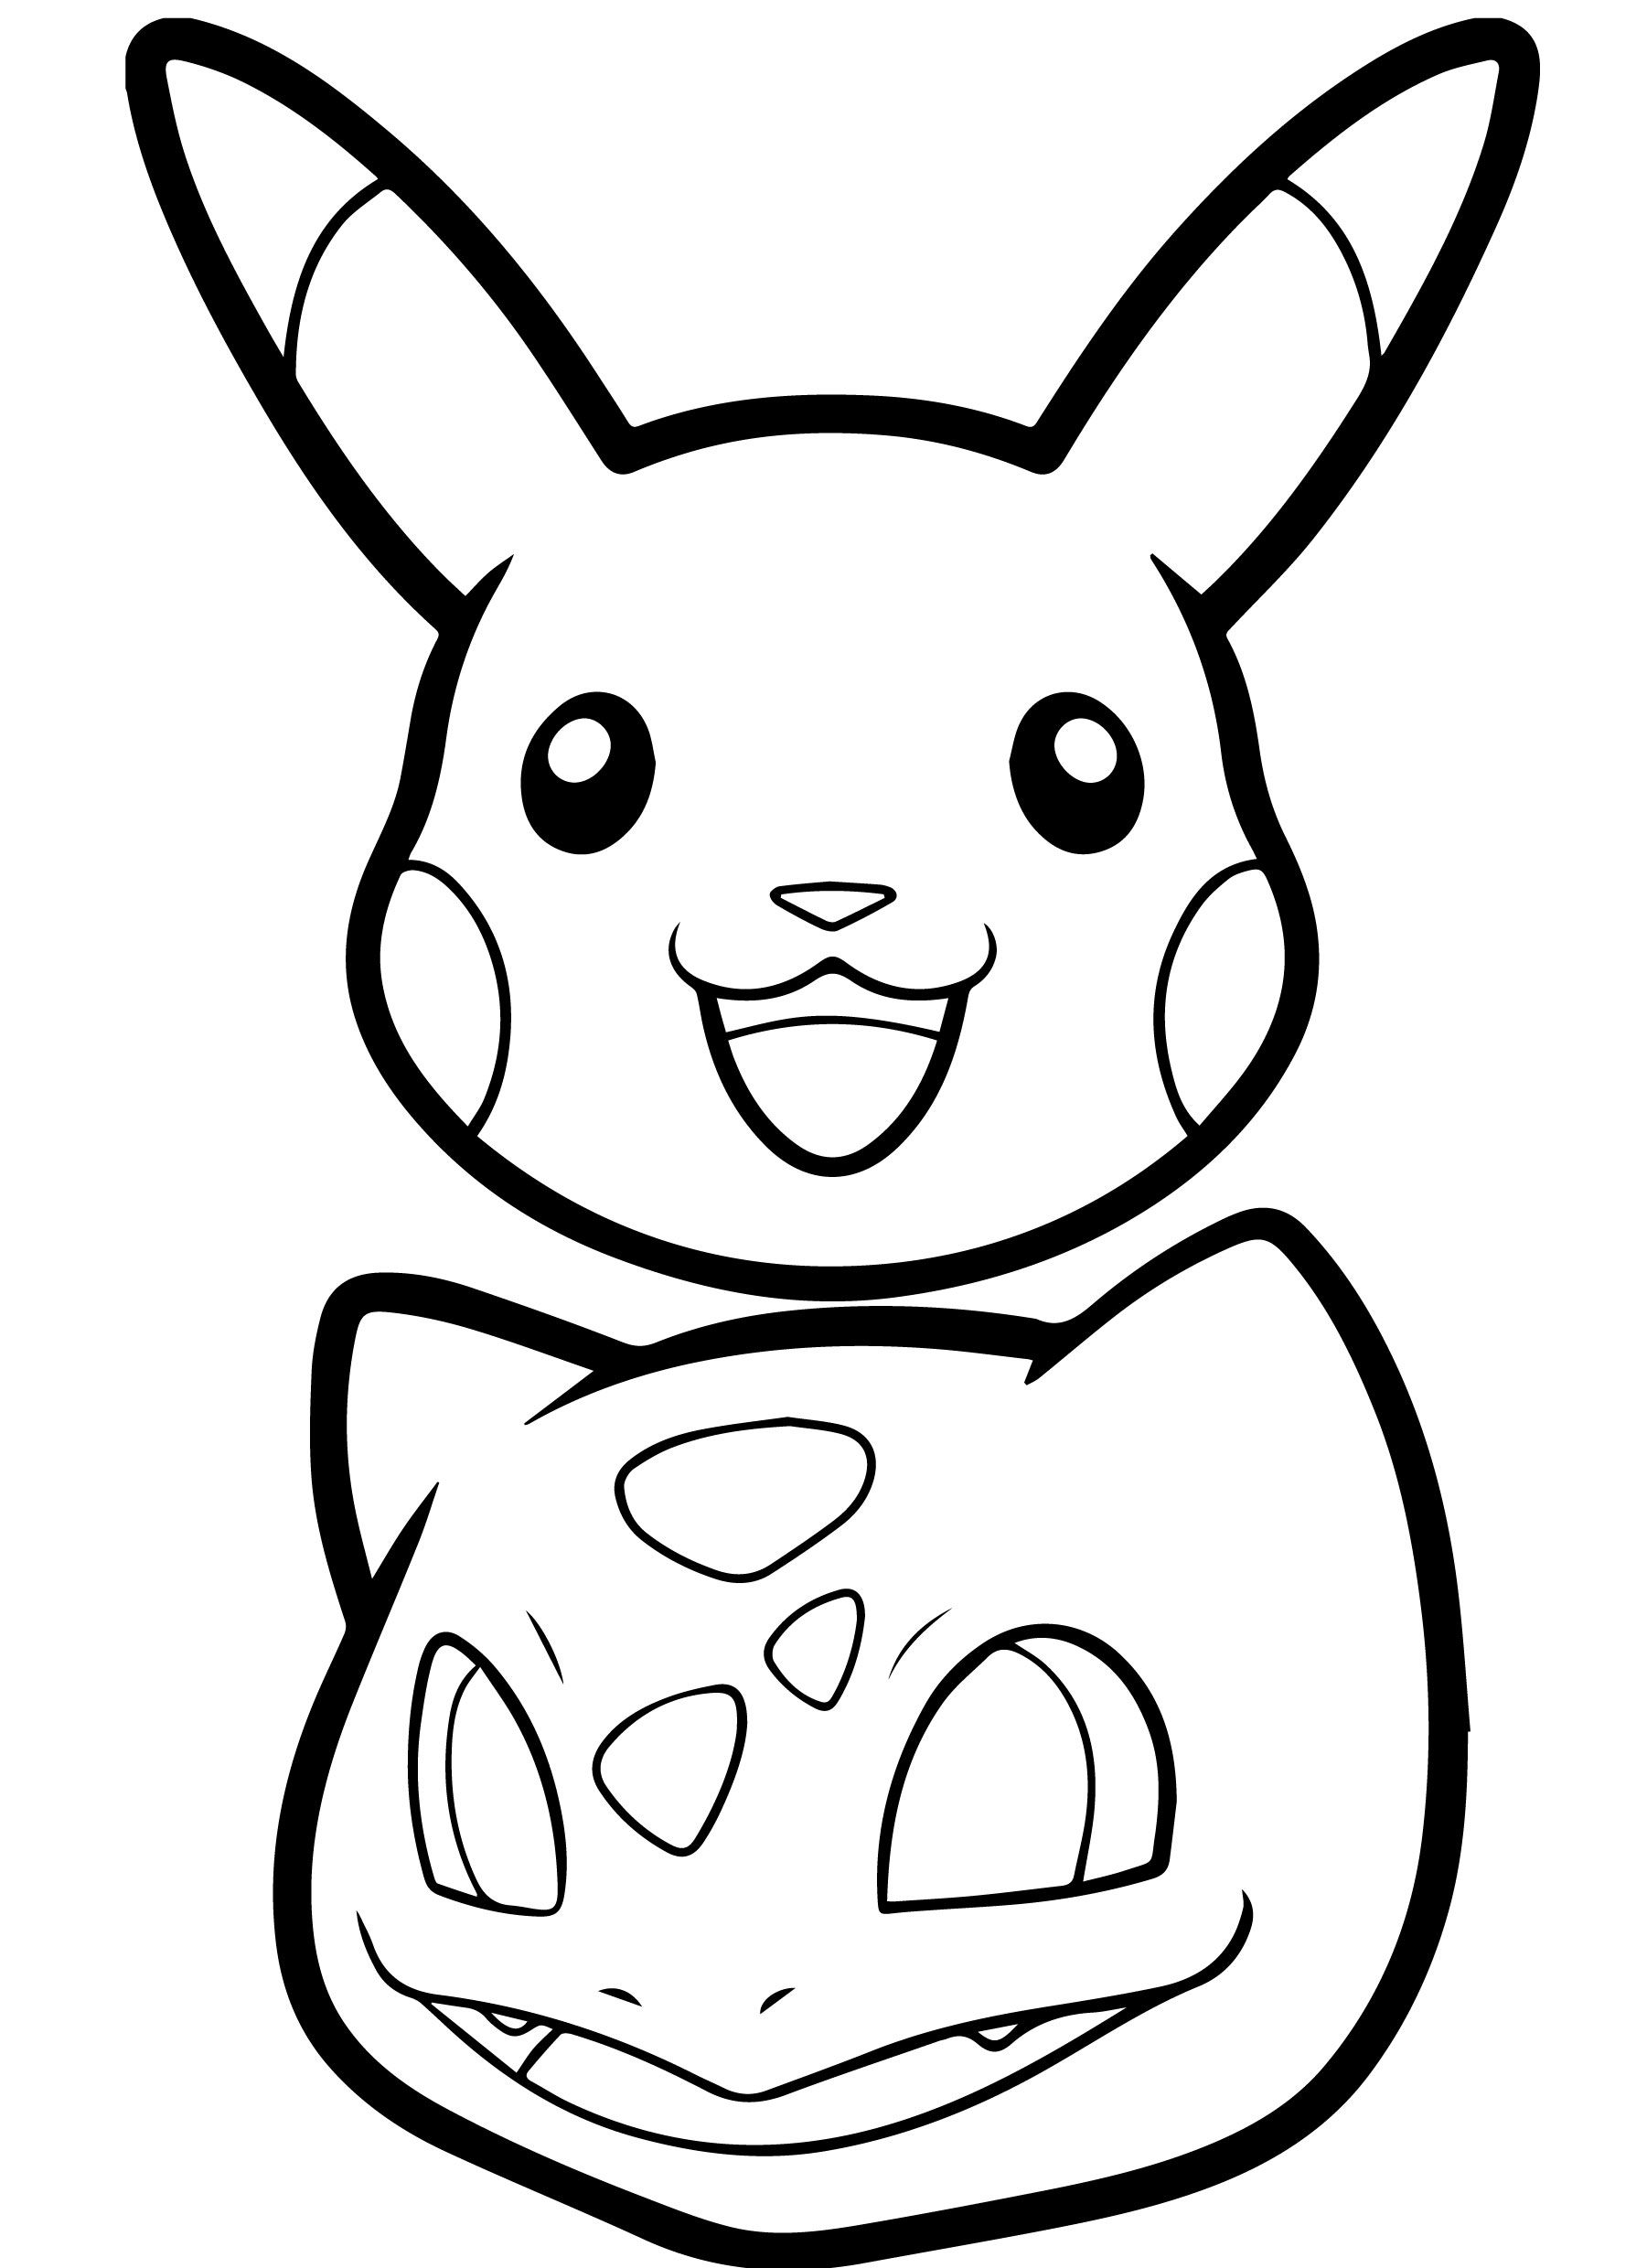 Pikachu Coloring Pages Head Pikachu, Coloriage